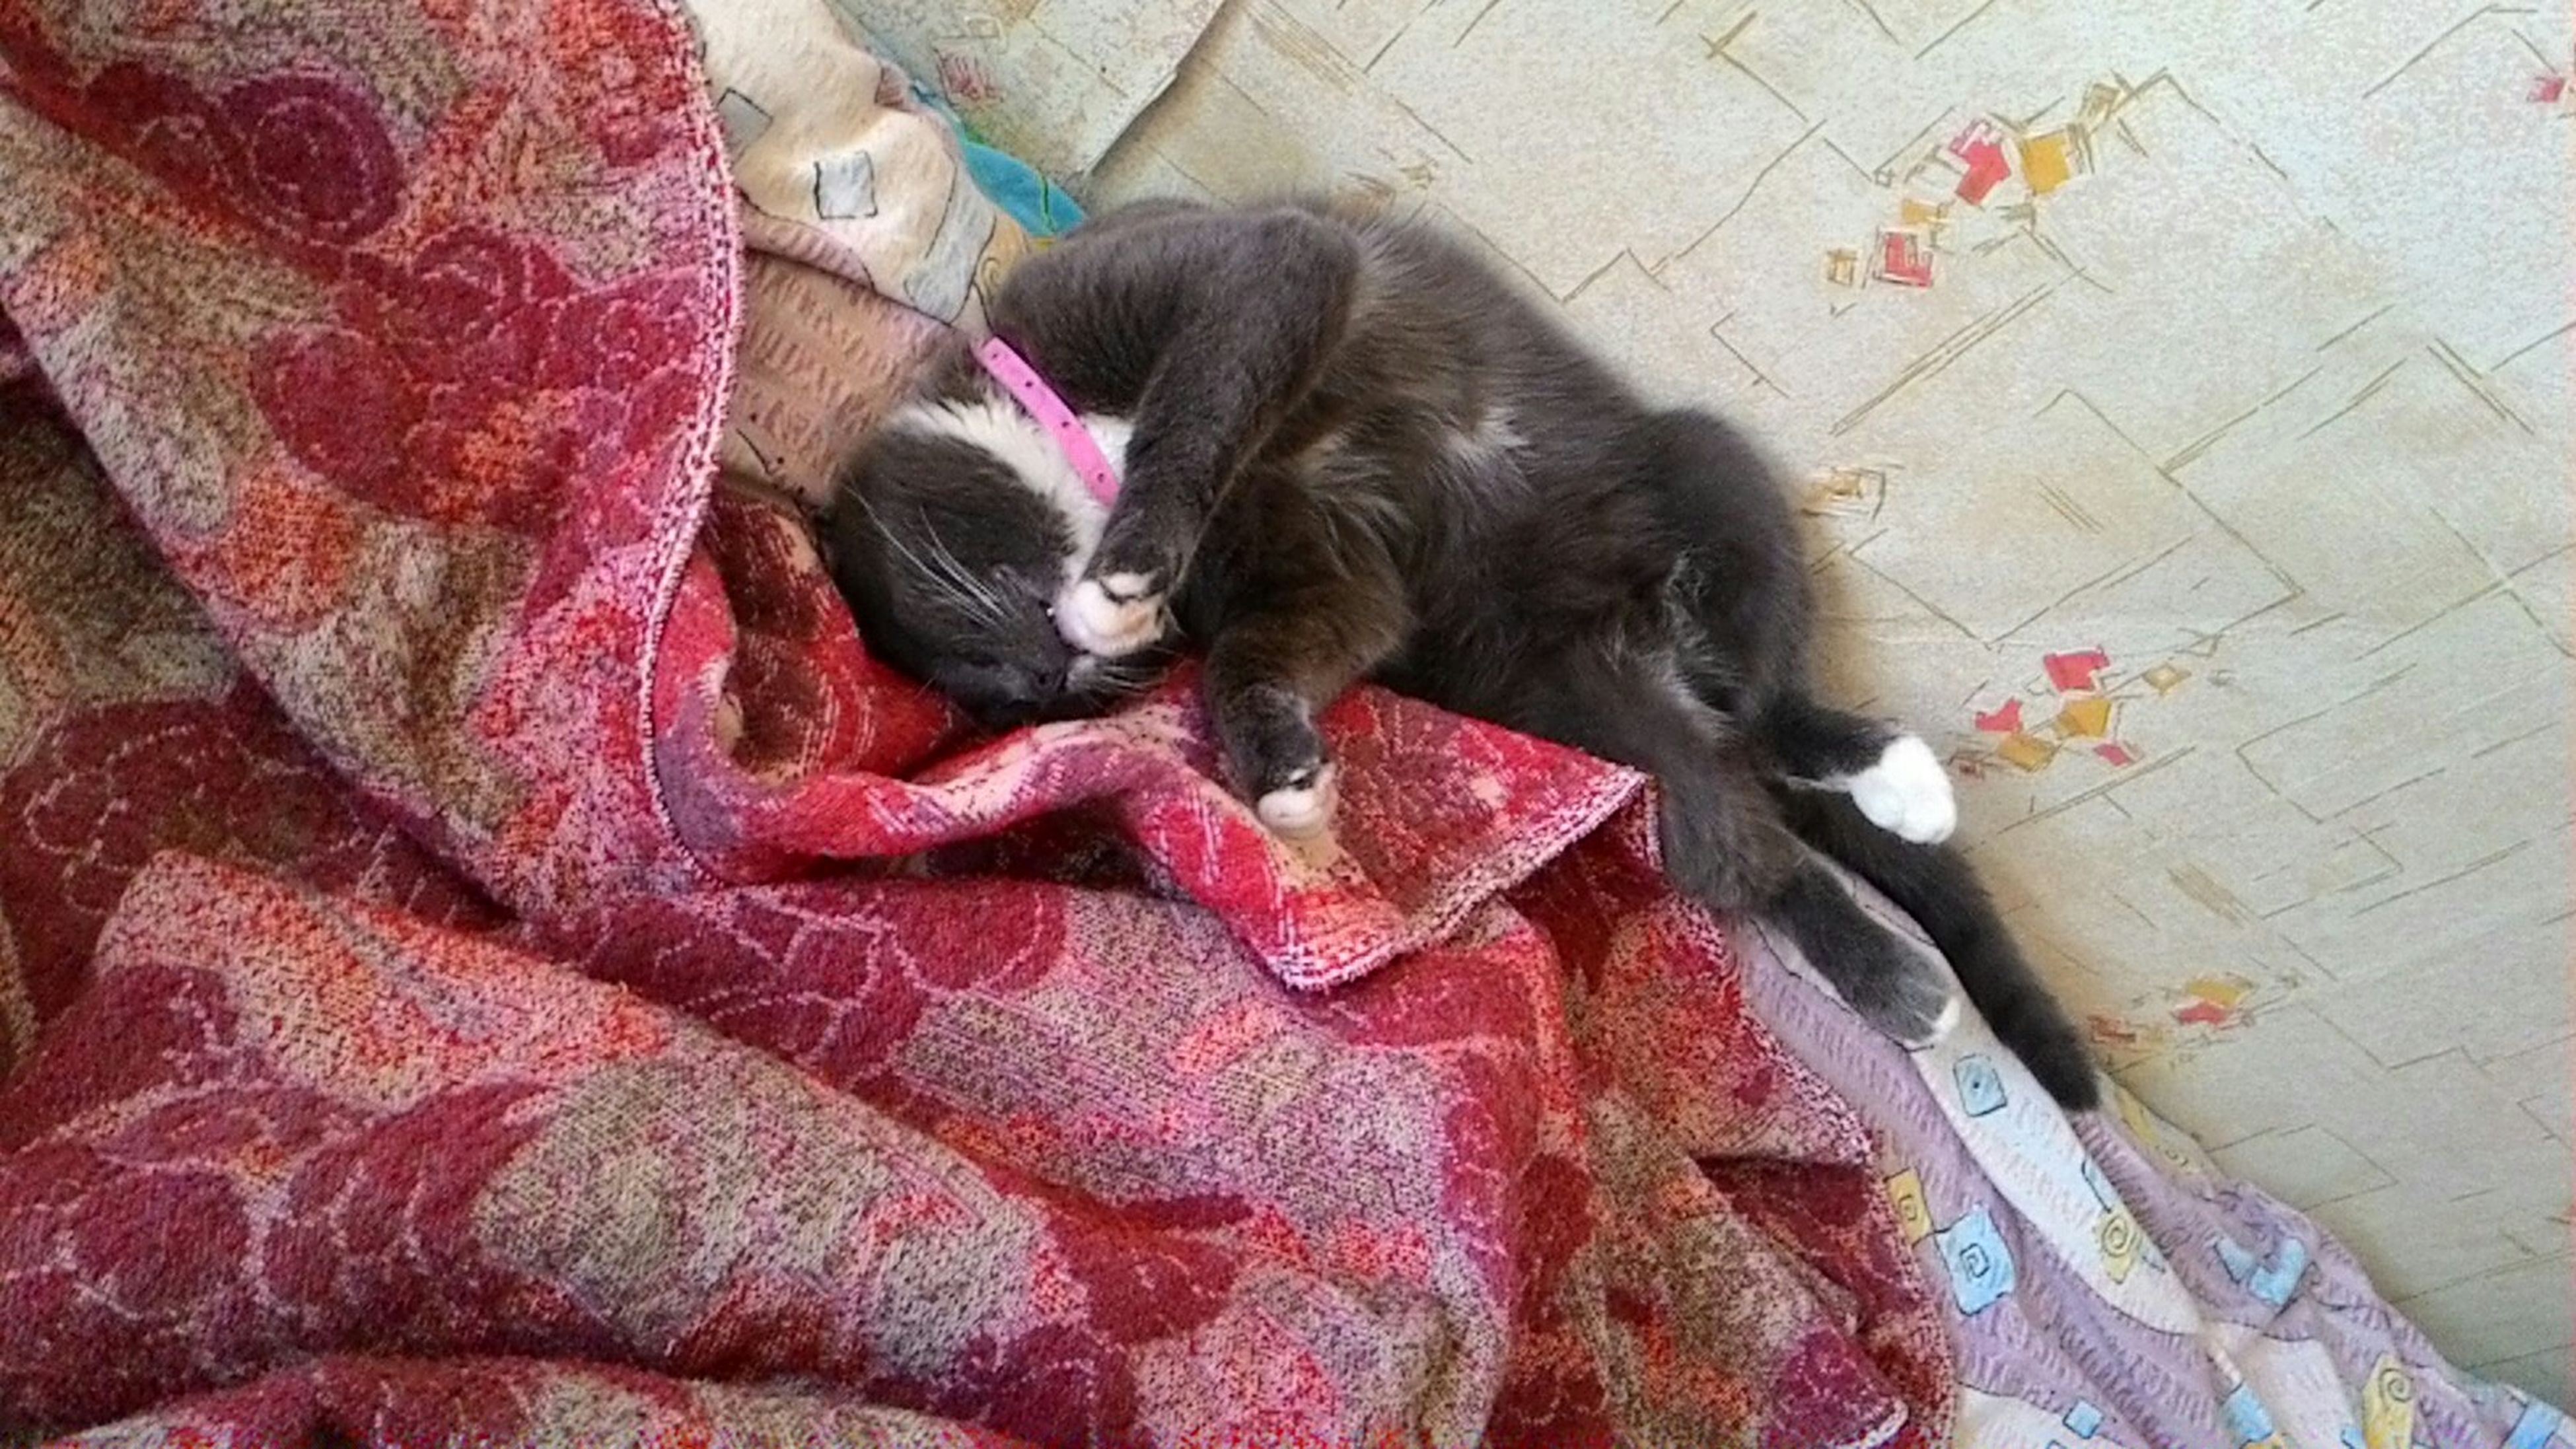 domestic animals, pets, domestic cat, cat, indoors, animal themes, mammal, one animal, high angle view, feline, relaxation, resting, sleeping, lying down, bed, no people, red, whisker, blanket, comfortable